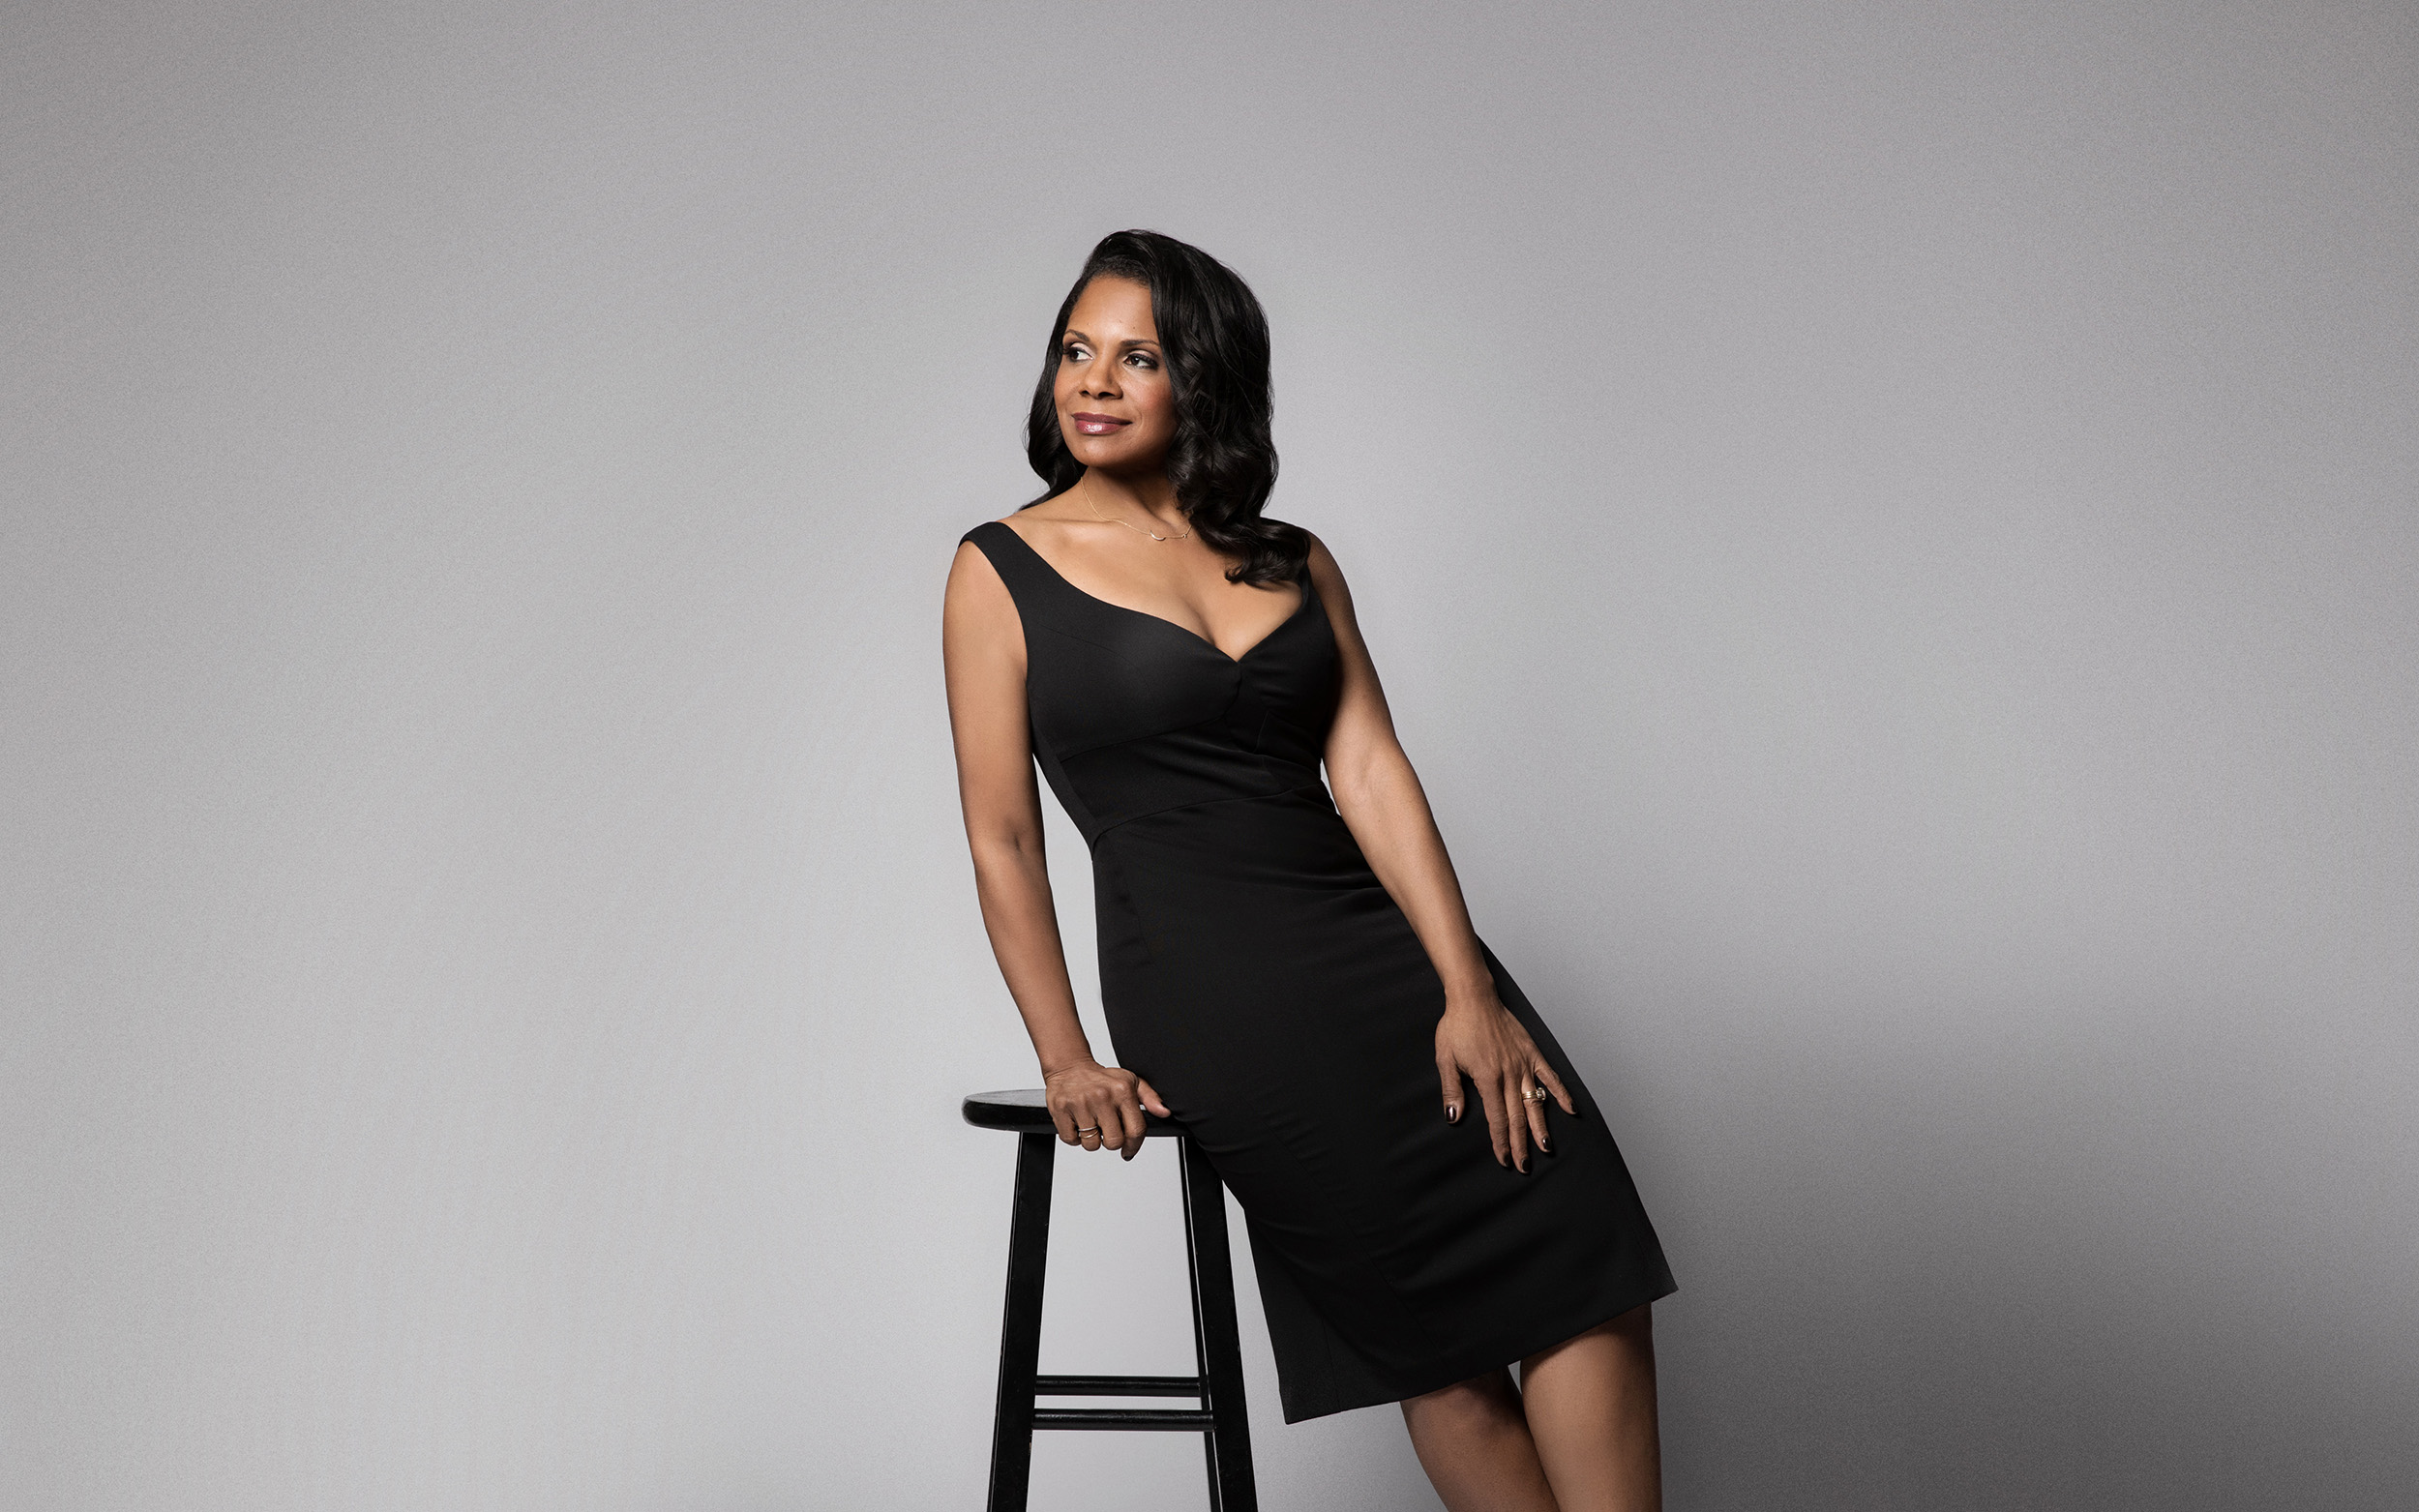 Audra McDonald sits on a stool wearing a form fitting black stress and looking off to the side smiling.